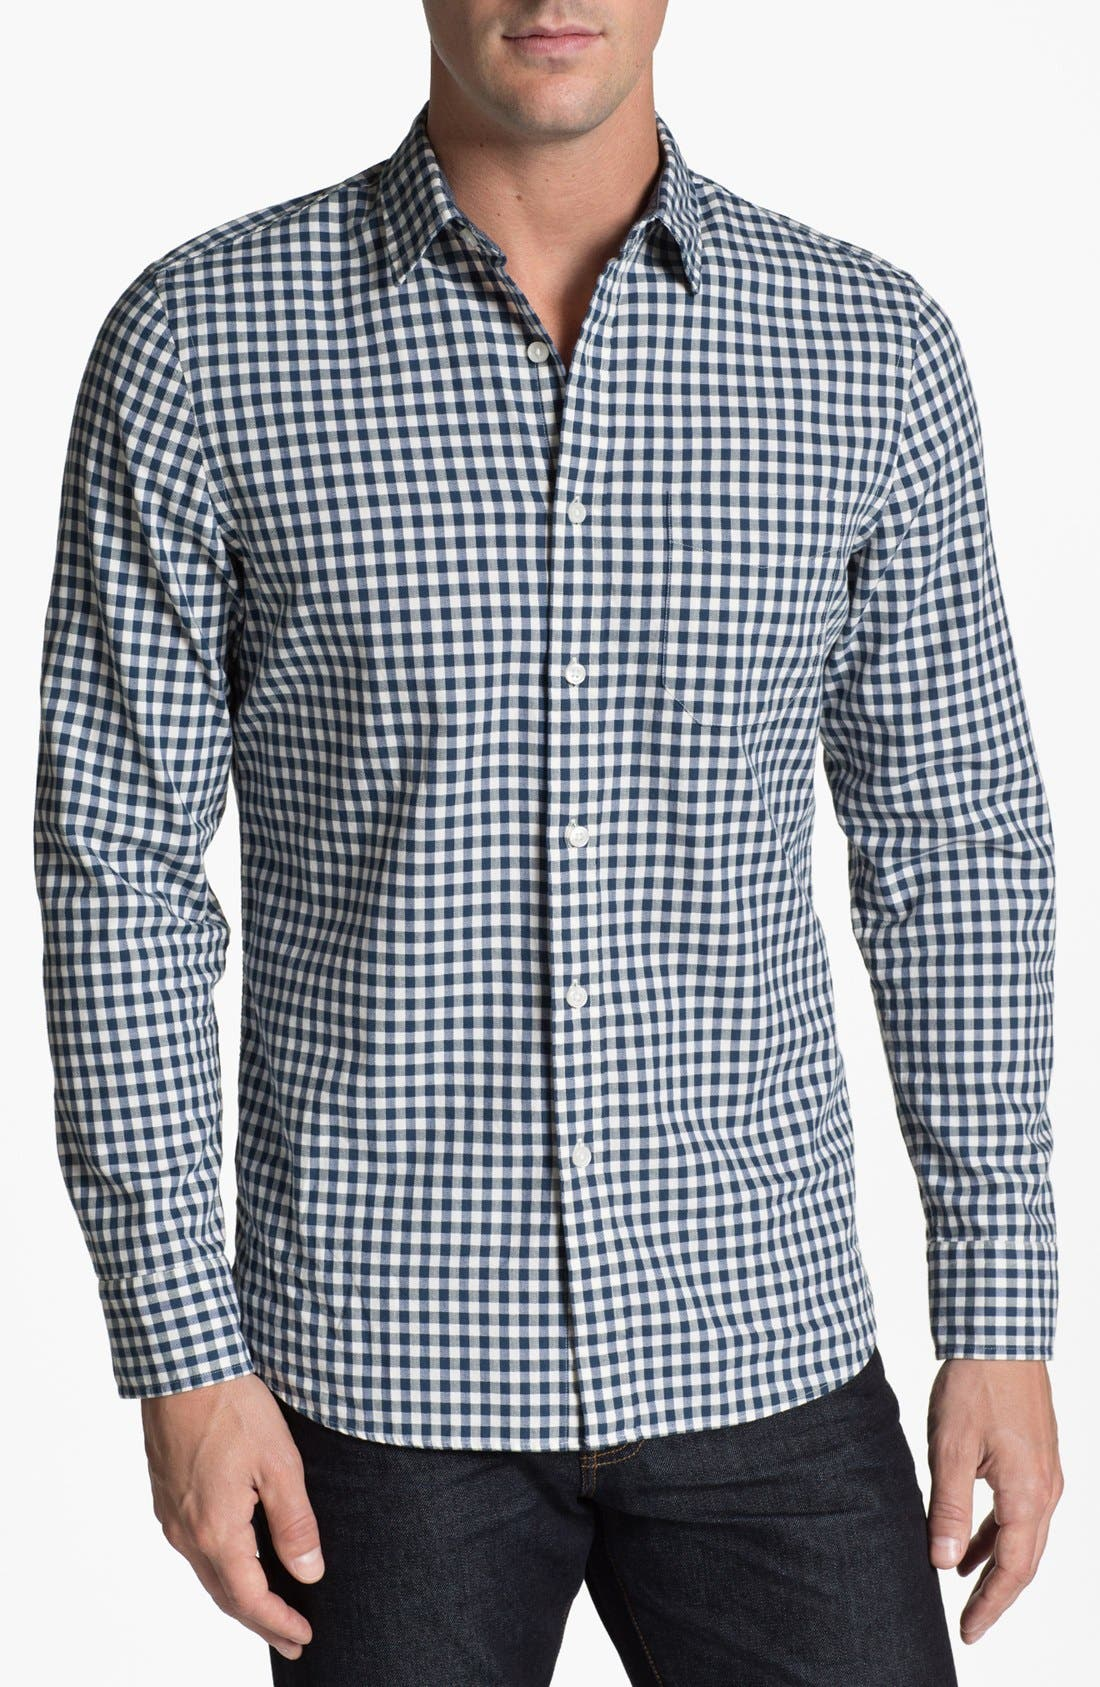 Alternate Image 1 Selected - Wallin & Bros. Gingham Trim Fit Sport Shirt